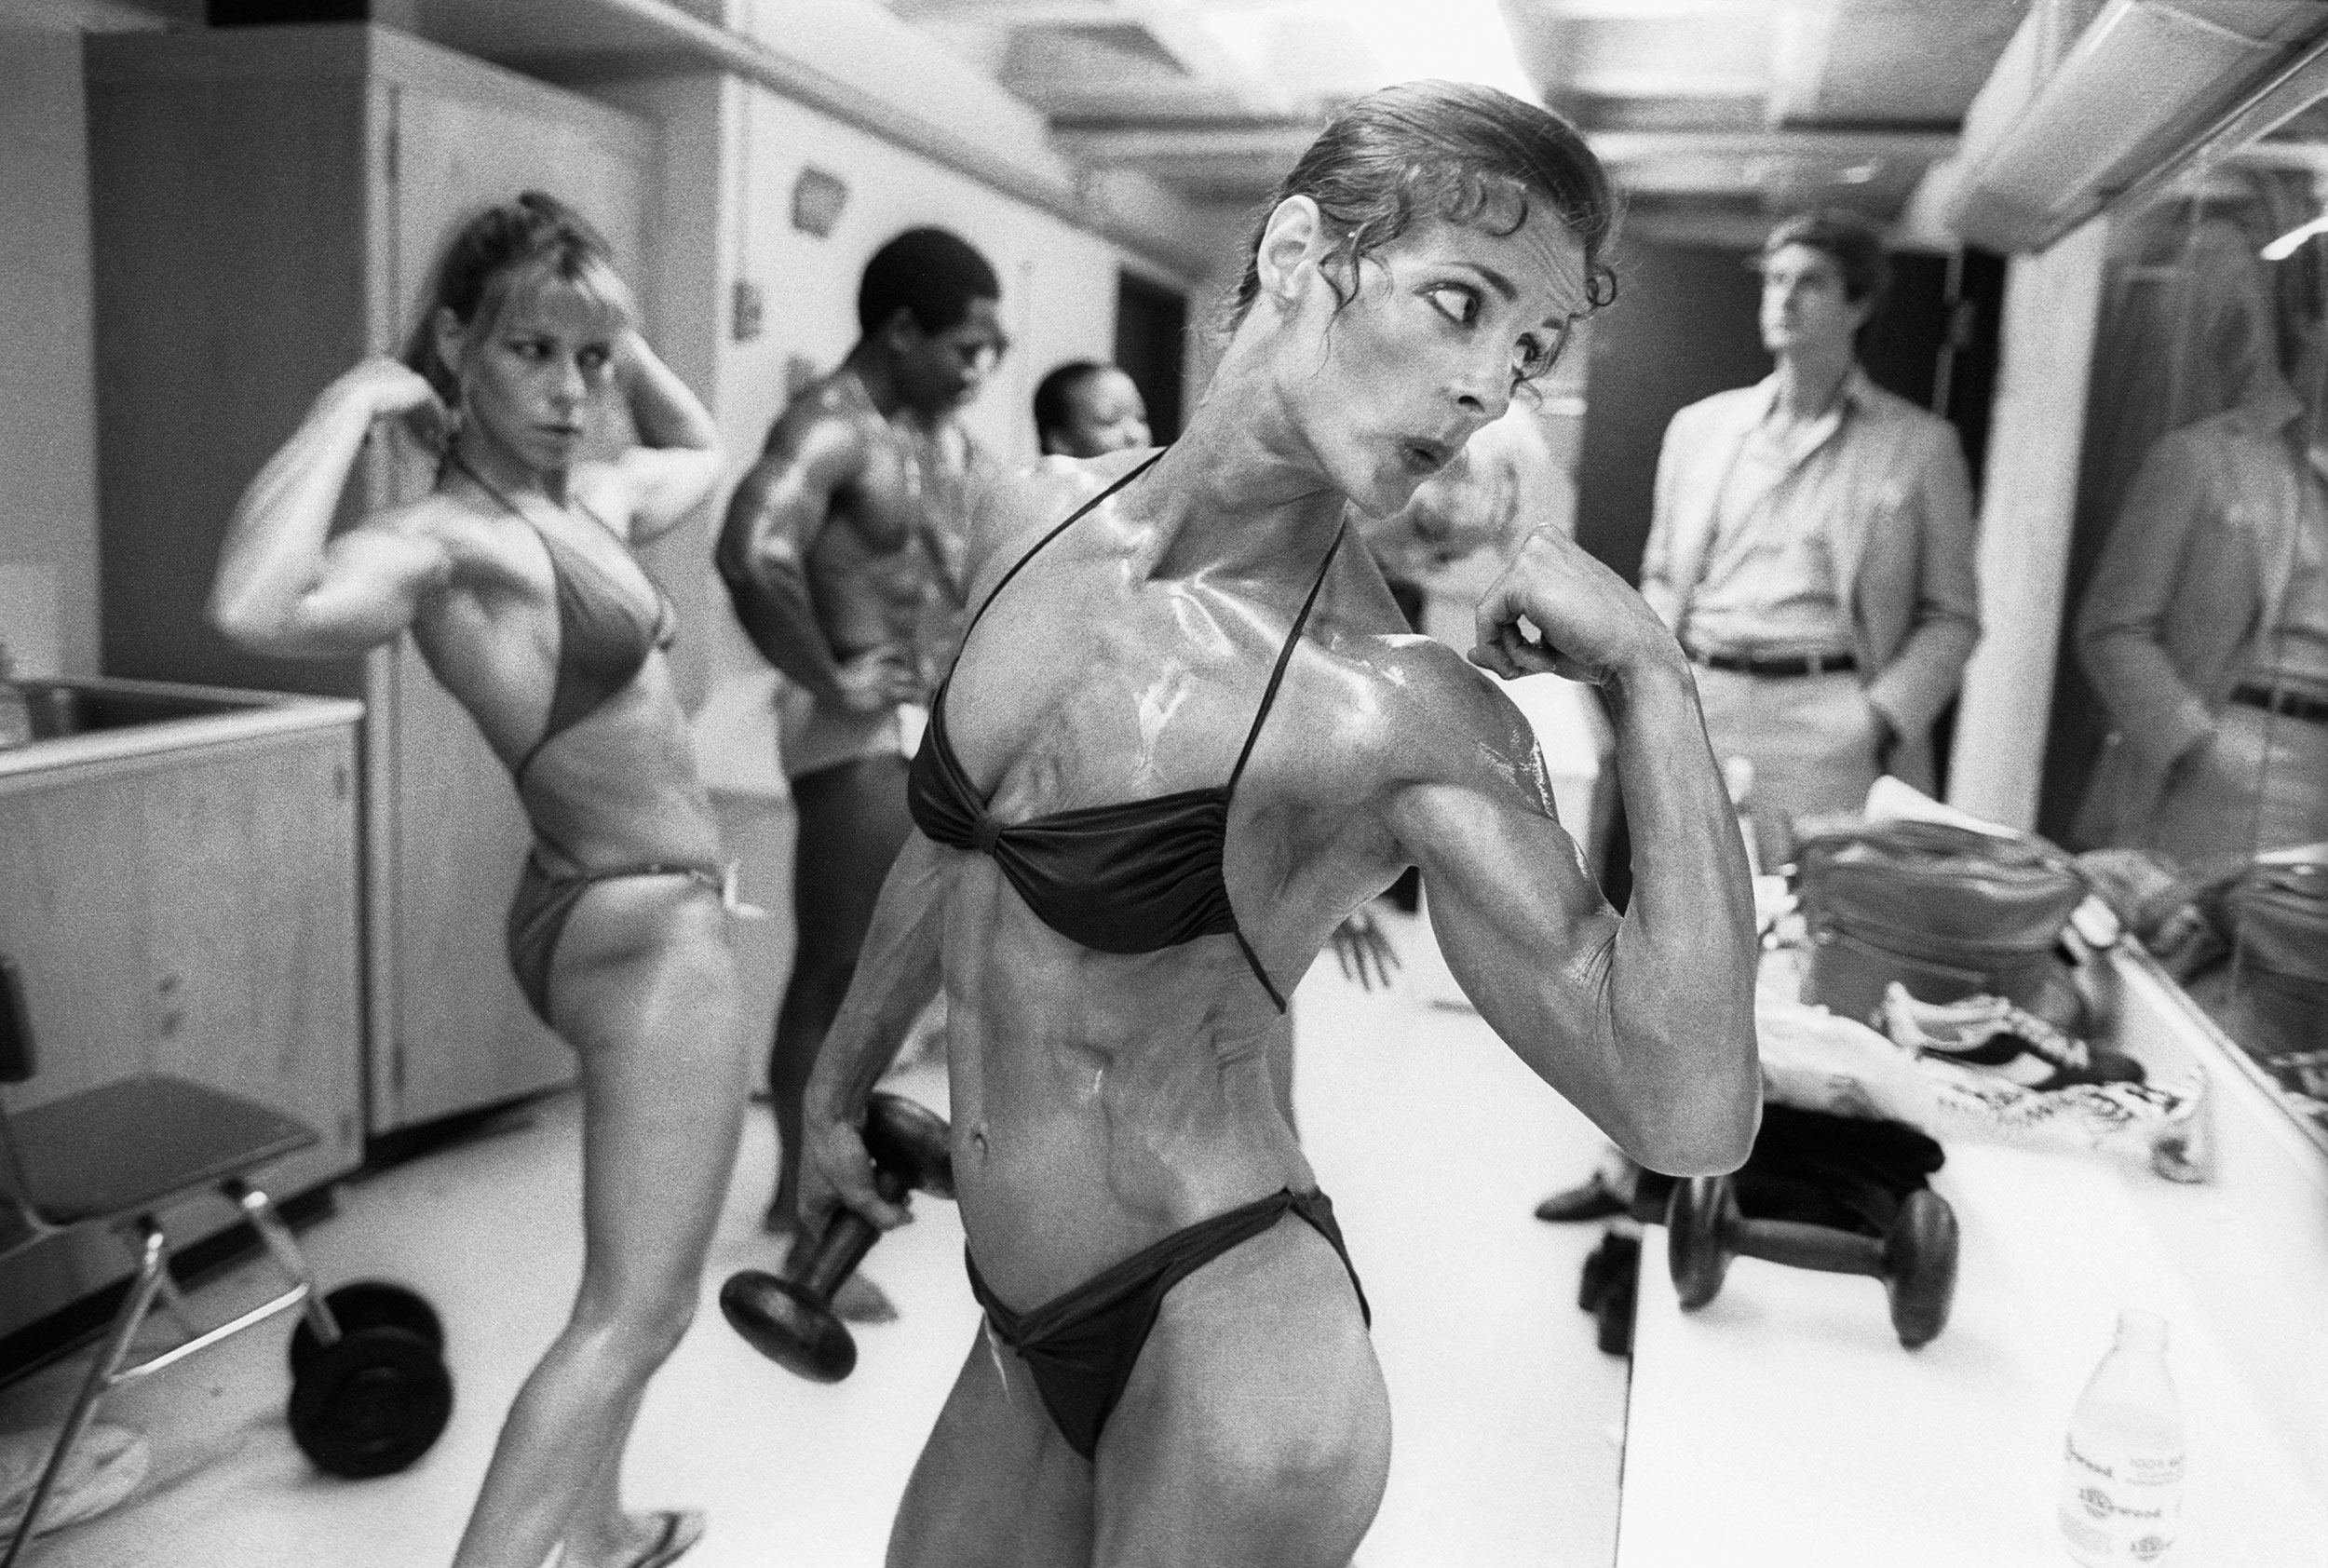 RIPPED...Valerie Mayers shows off her biceps backstage before winning the Ms Empire State Competition in 1981